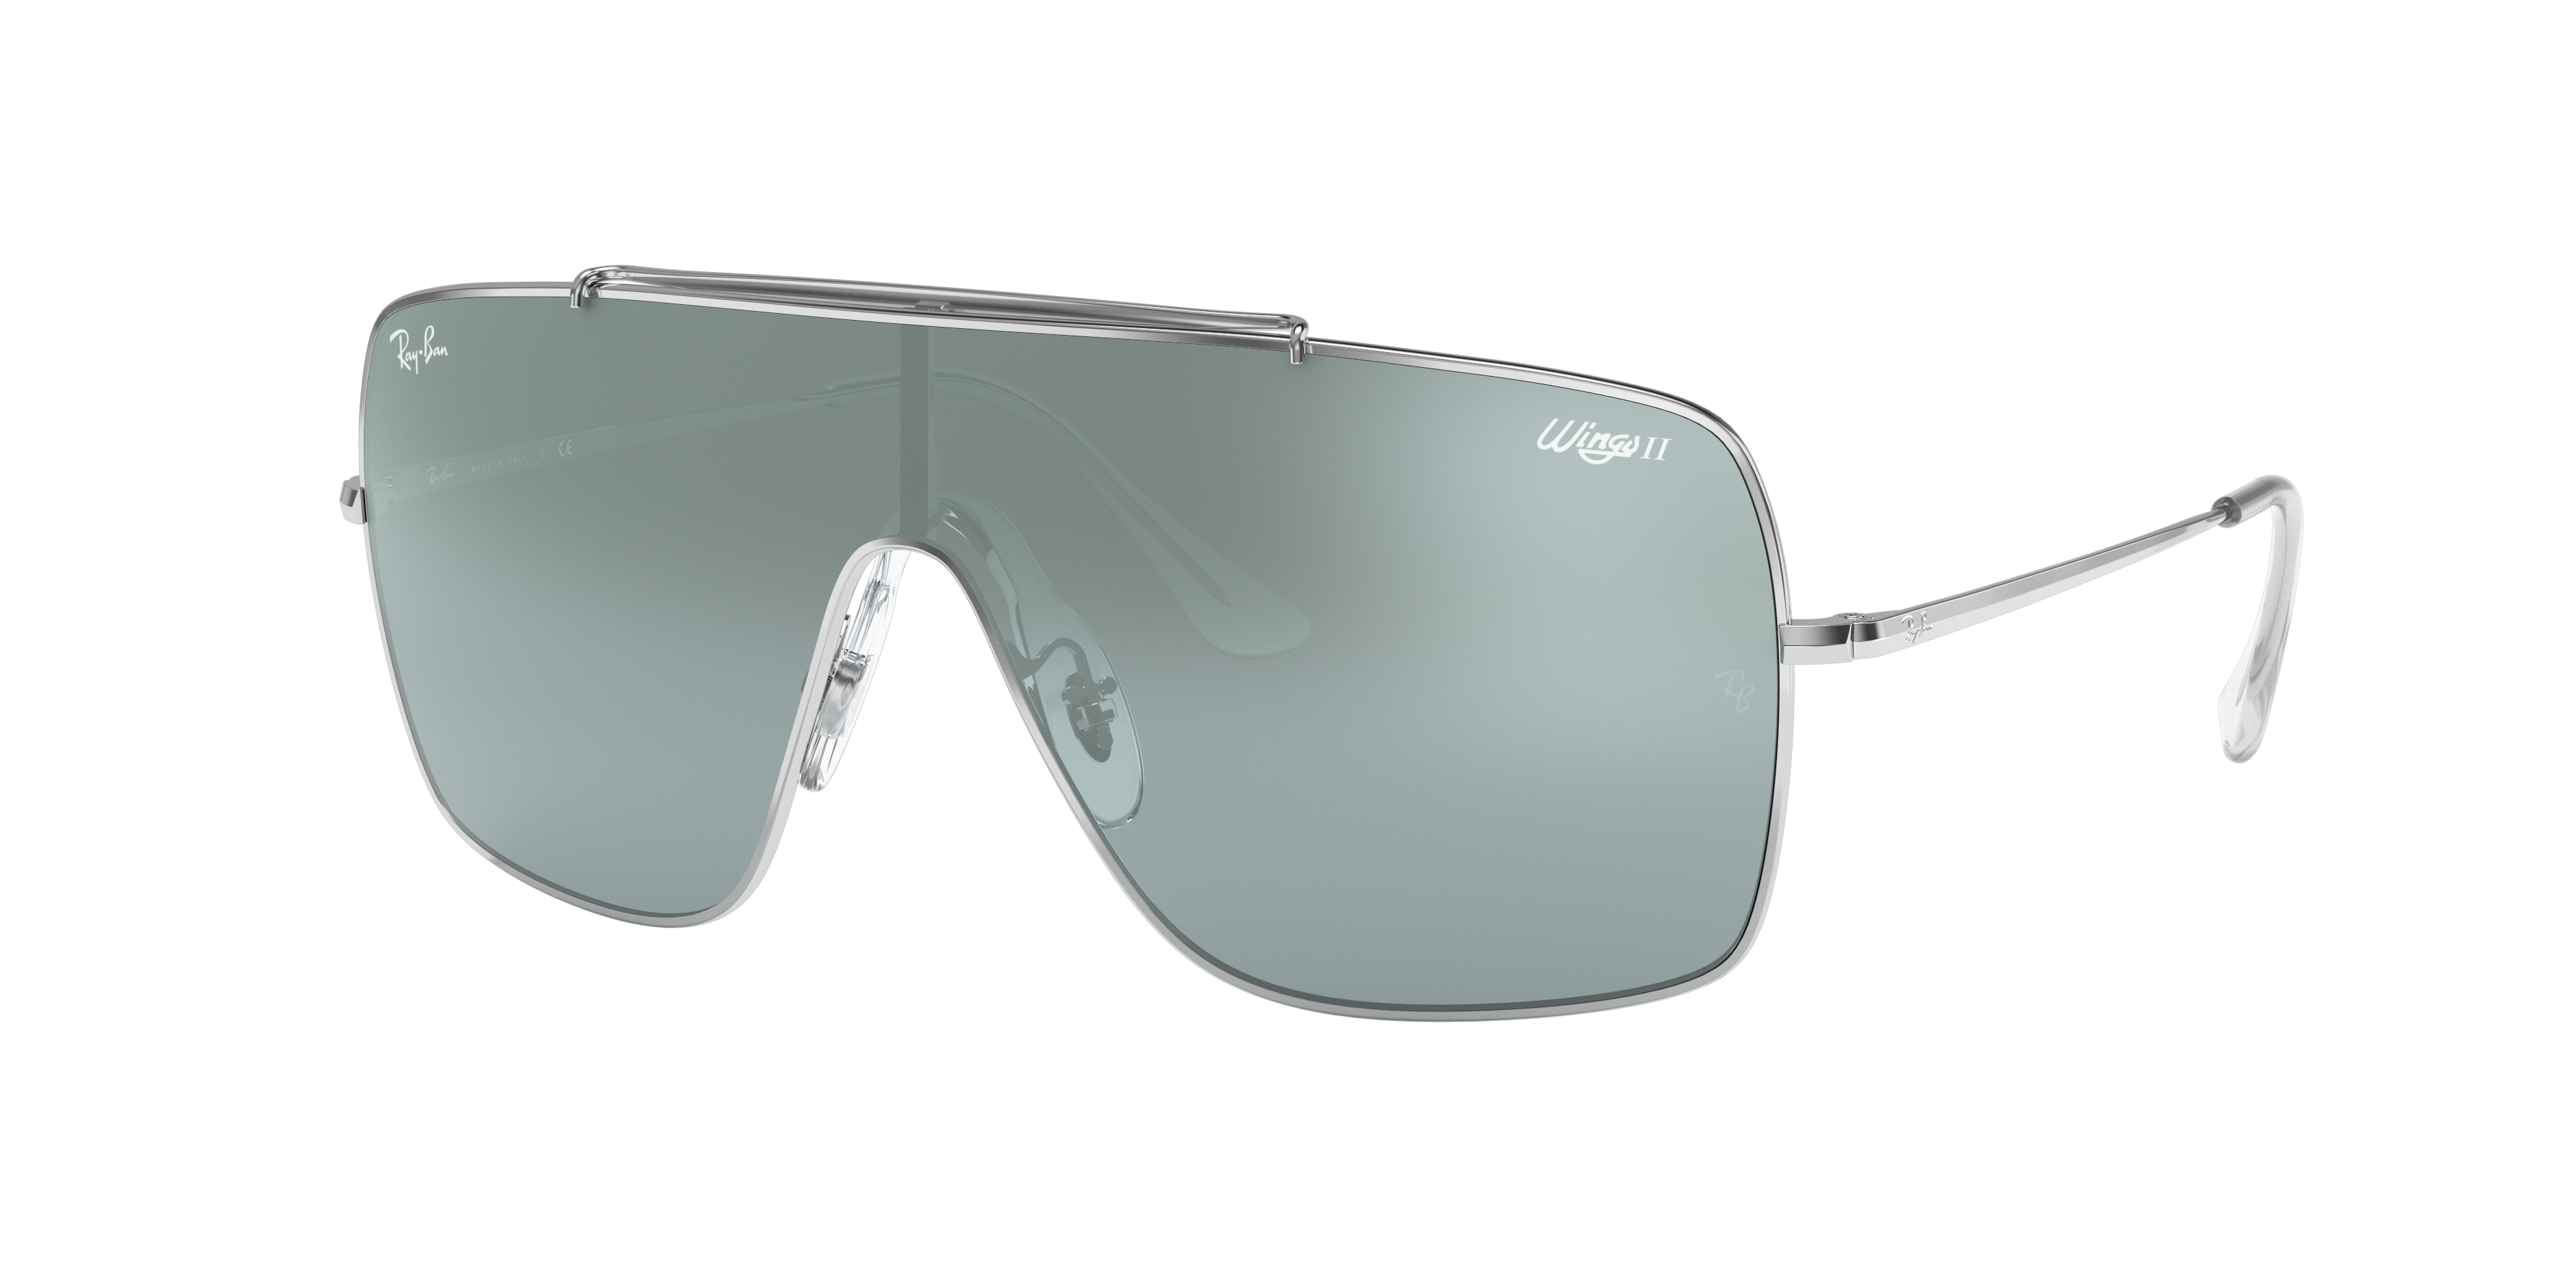 Ray-Ban Wings II Silver, Blue Lenses - RB3697